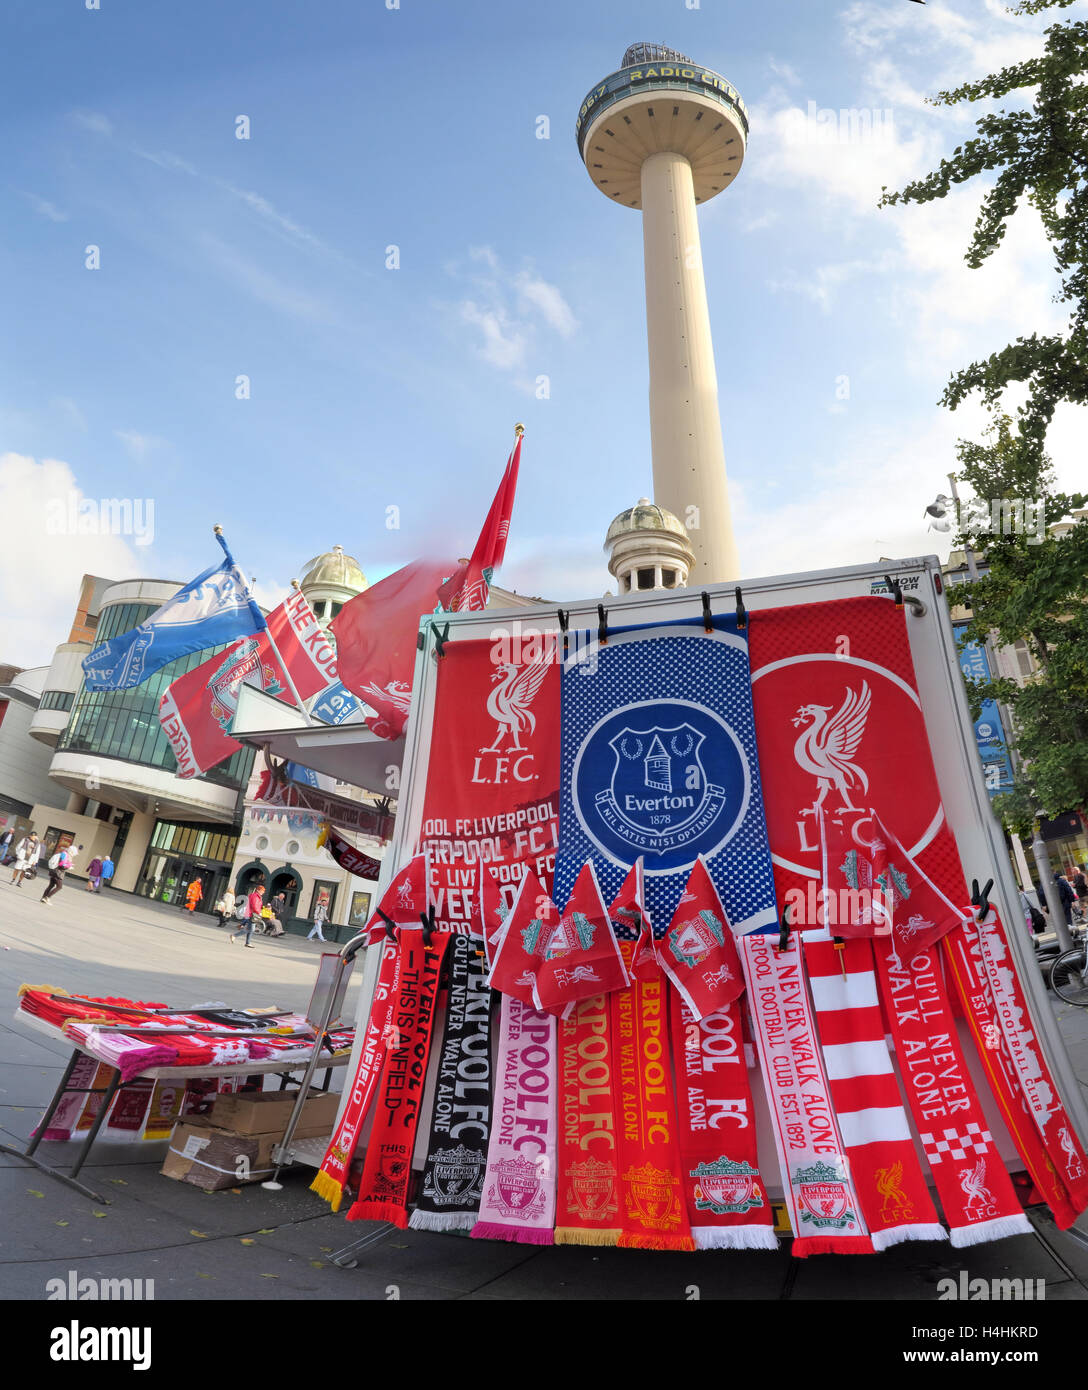 LFC,EFC,Everton,FC,towels,scarf,scarves,red,blue,stall,Square,market,markets,selling,retail,vibrant,tourist,tourism,travel,landmark,concrete,1960s,sunny,summer,city,centre,attraction,Liverpool FC,Everton FC,The Toffees,TheReds,Radio City Tower,Williamson Square,City Centre,GoTonySmith,@HotpixUK,Tony,Smith,UK,GB,Great,Britain,United,Kingdom,English,British,England,L1,1RL,Houghton,You,Will,Never,Walk,Alone,Buy Pictures of,Buy Images Of,Images of,Stock Images,Tony Smith,United Kingdom,Great Britain,British Isles,1 Houghton St,L1 1RL,You Will Never Walk Alone,Youll Never Walk Alone